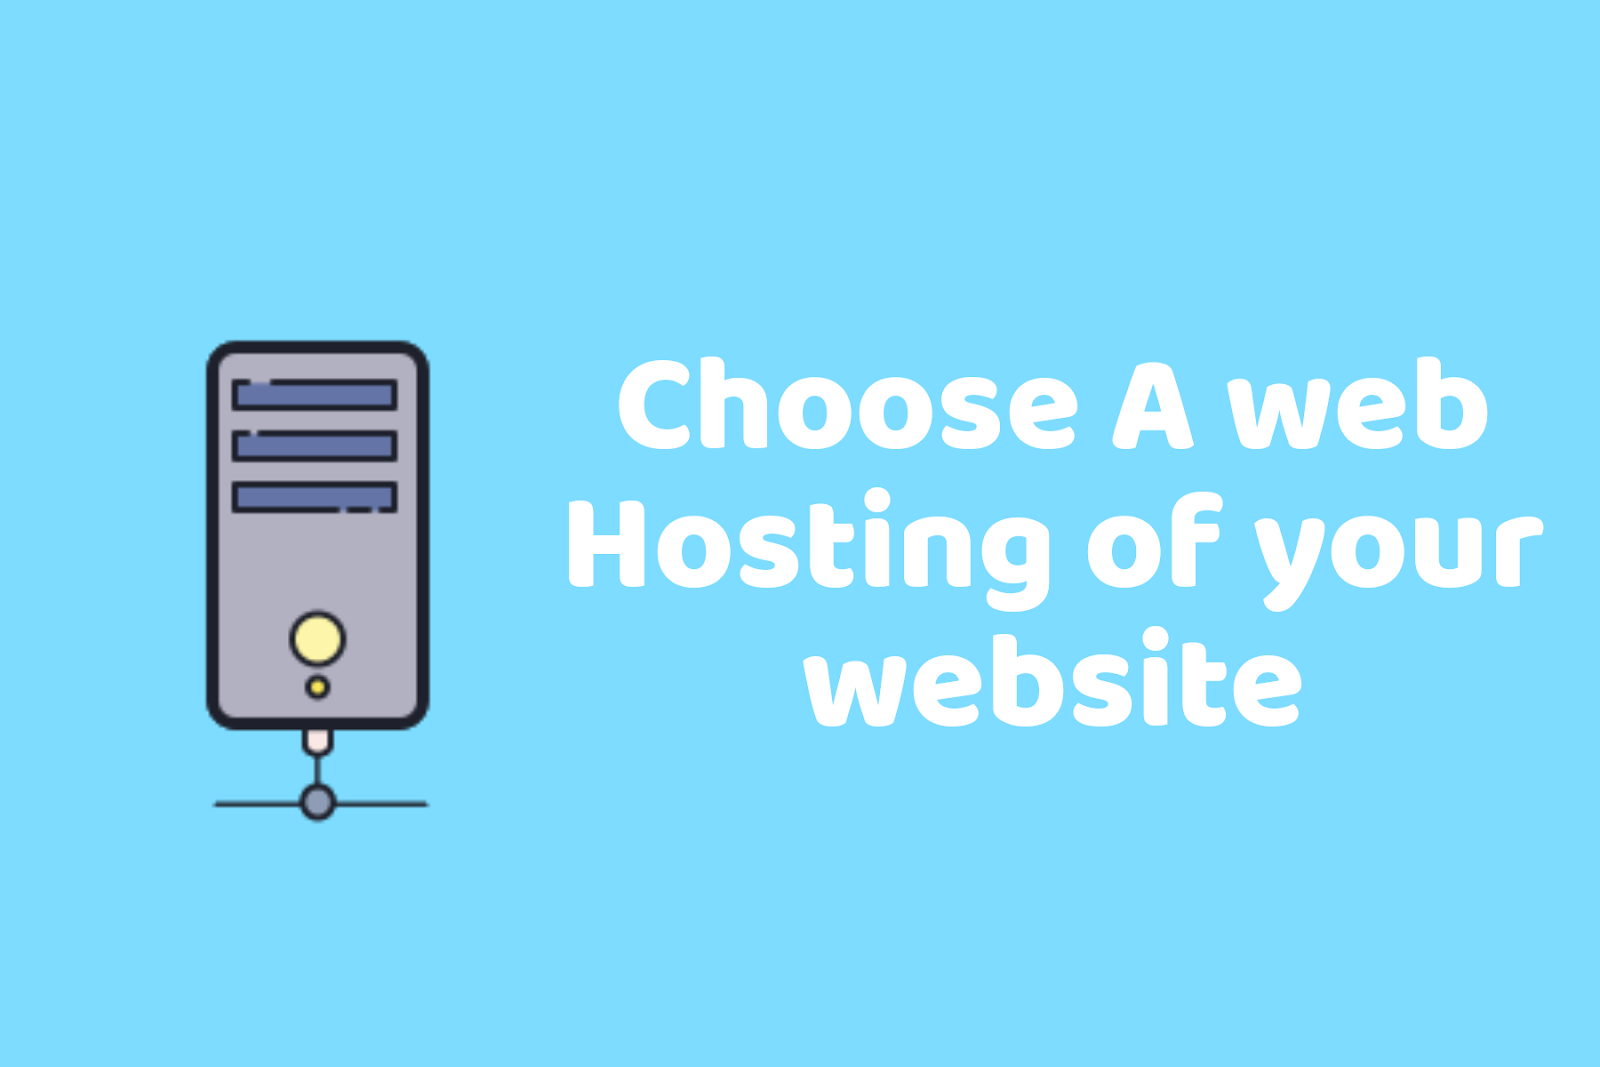 Choose a web hosting of your website for starting blog